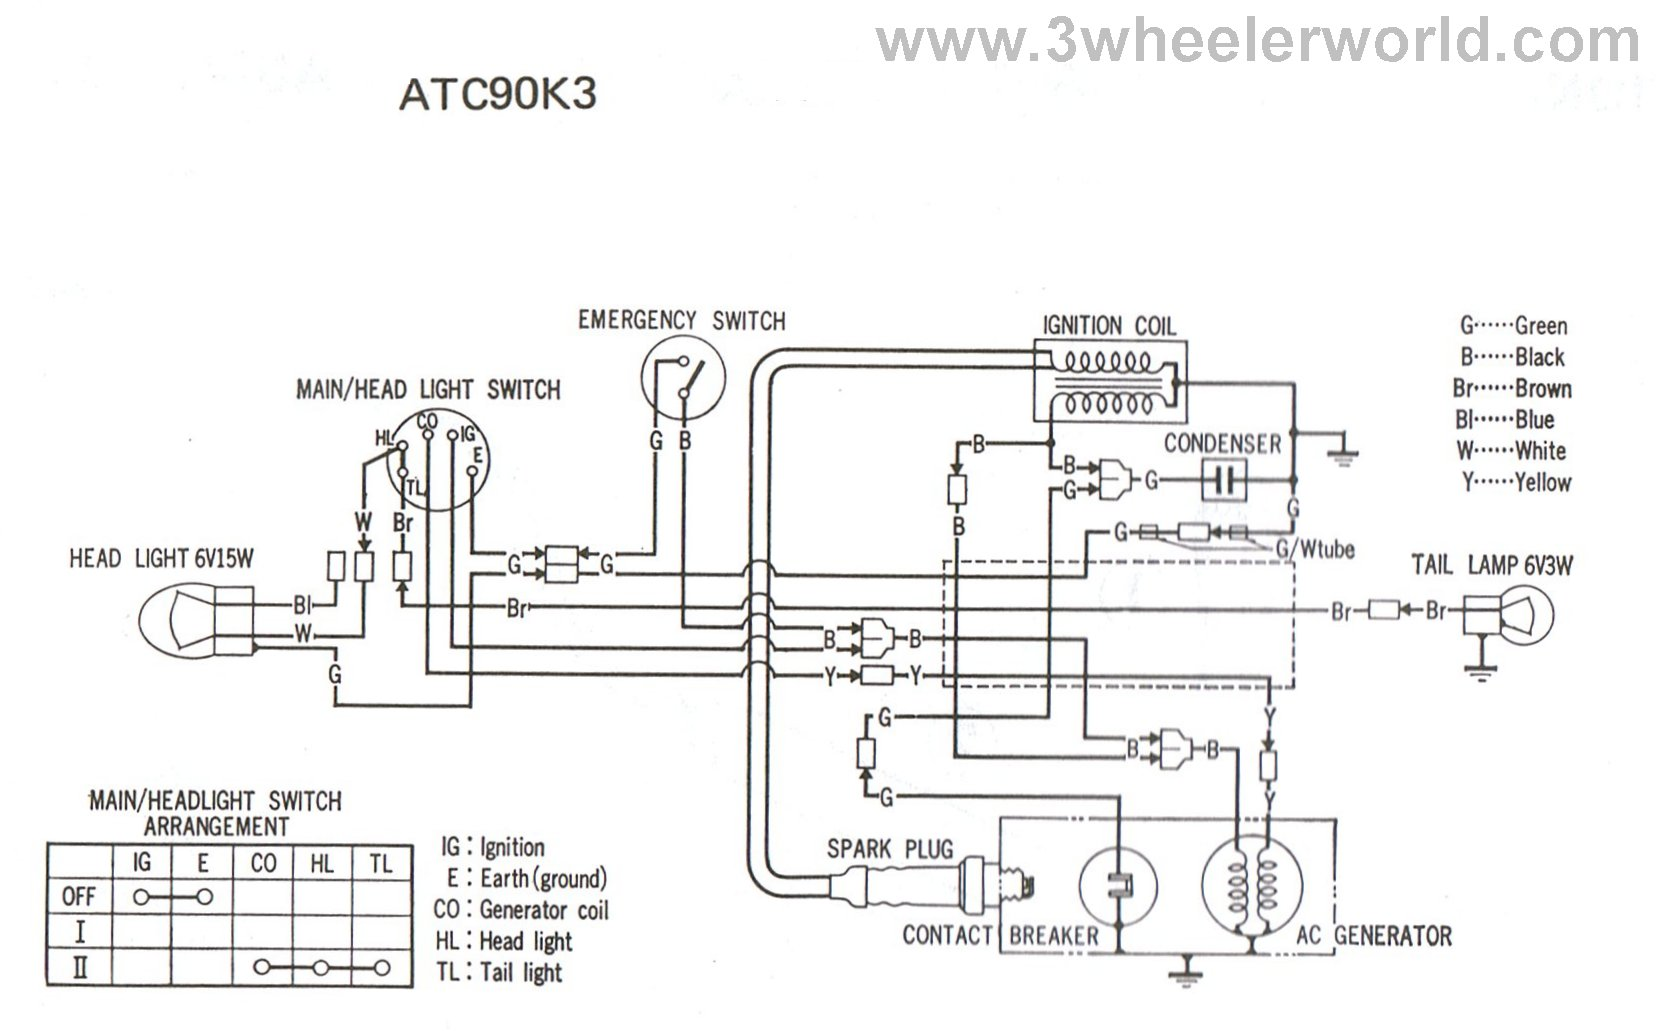 Honda Wiring Diagram 1989 Expert Diagrams 1992 Gl1500 3 Wheeler World Tech Help Xr600r Motorcycle Atc90 K3